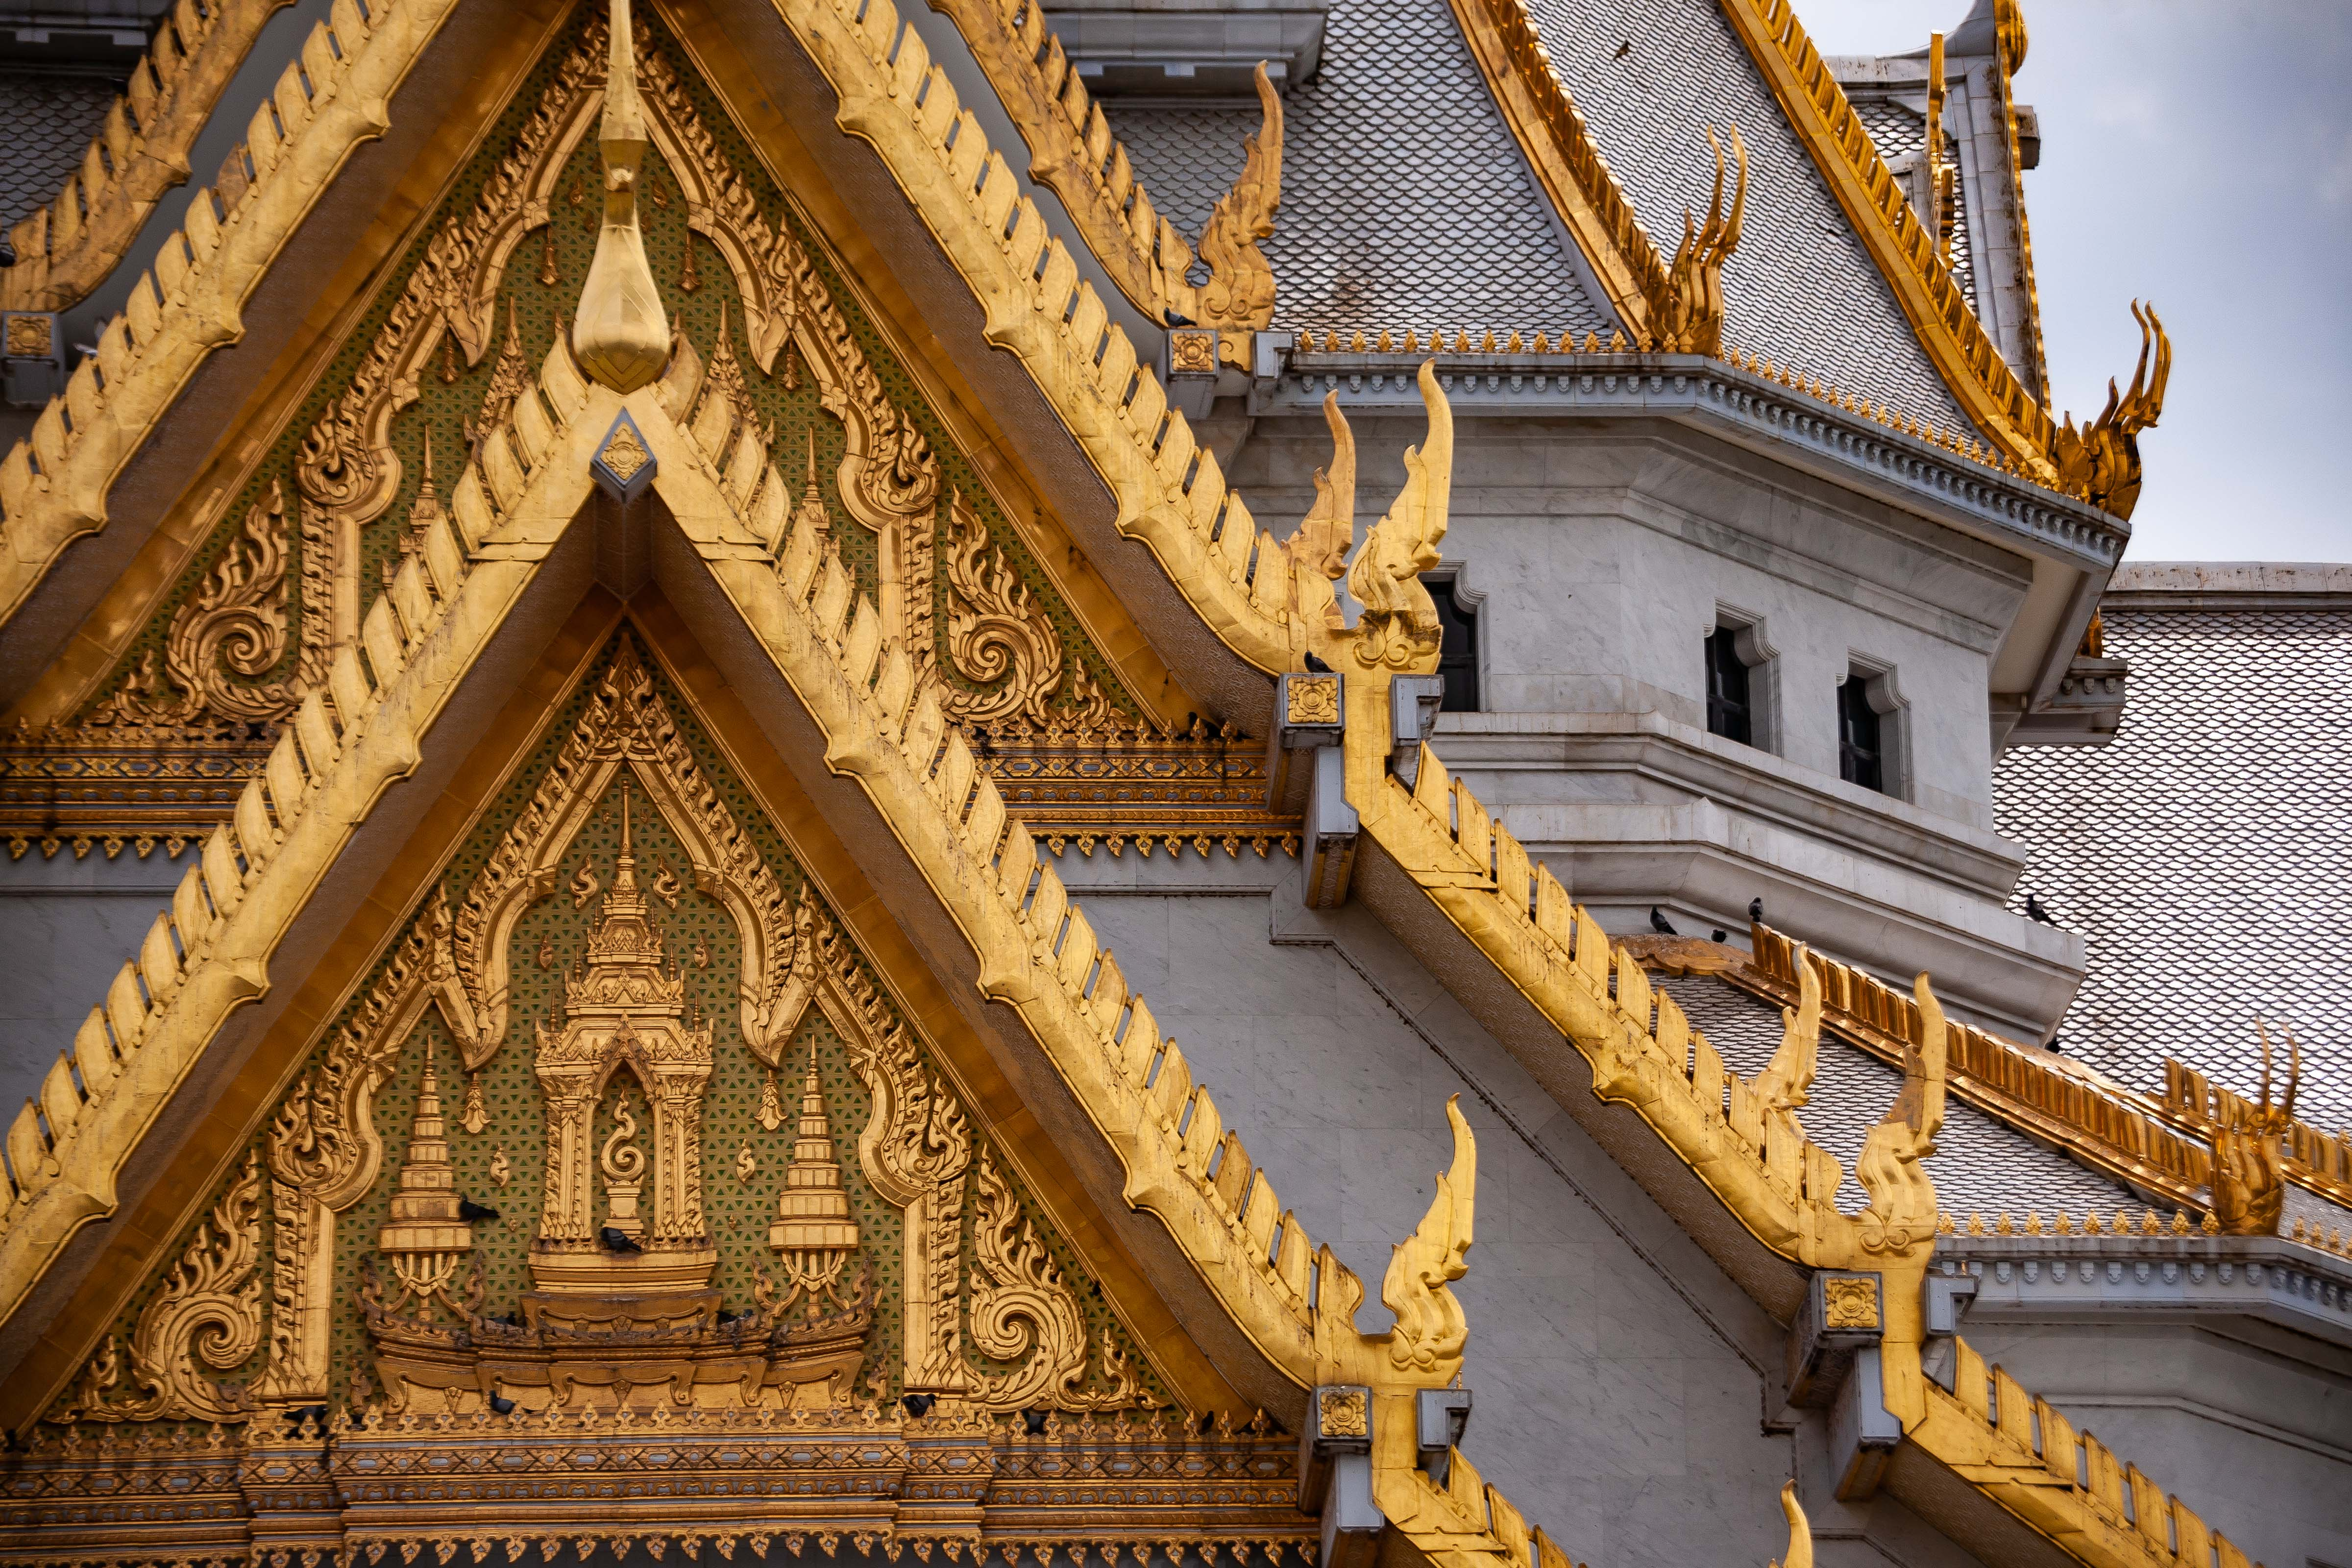 Thailand, Chachoengsao Prov, Temple Detail, 2008, IMG 9746